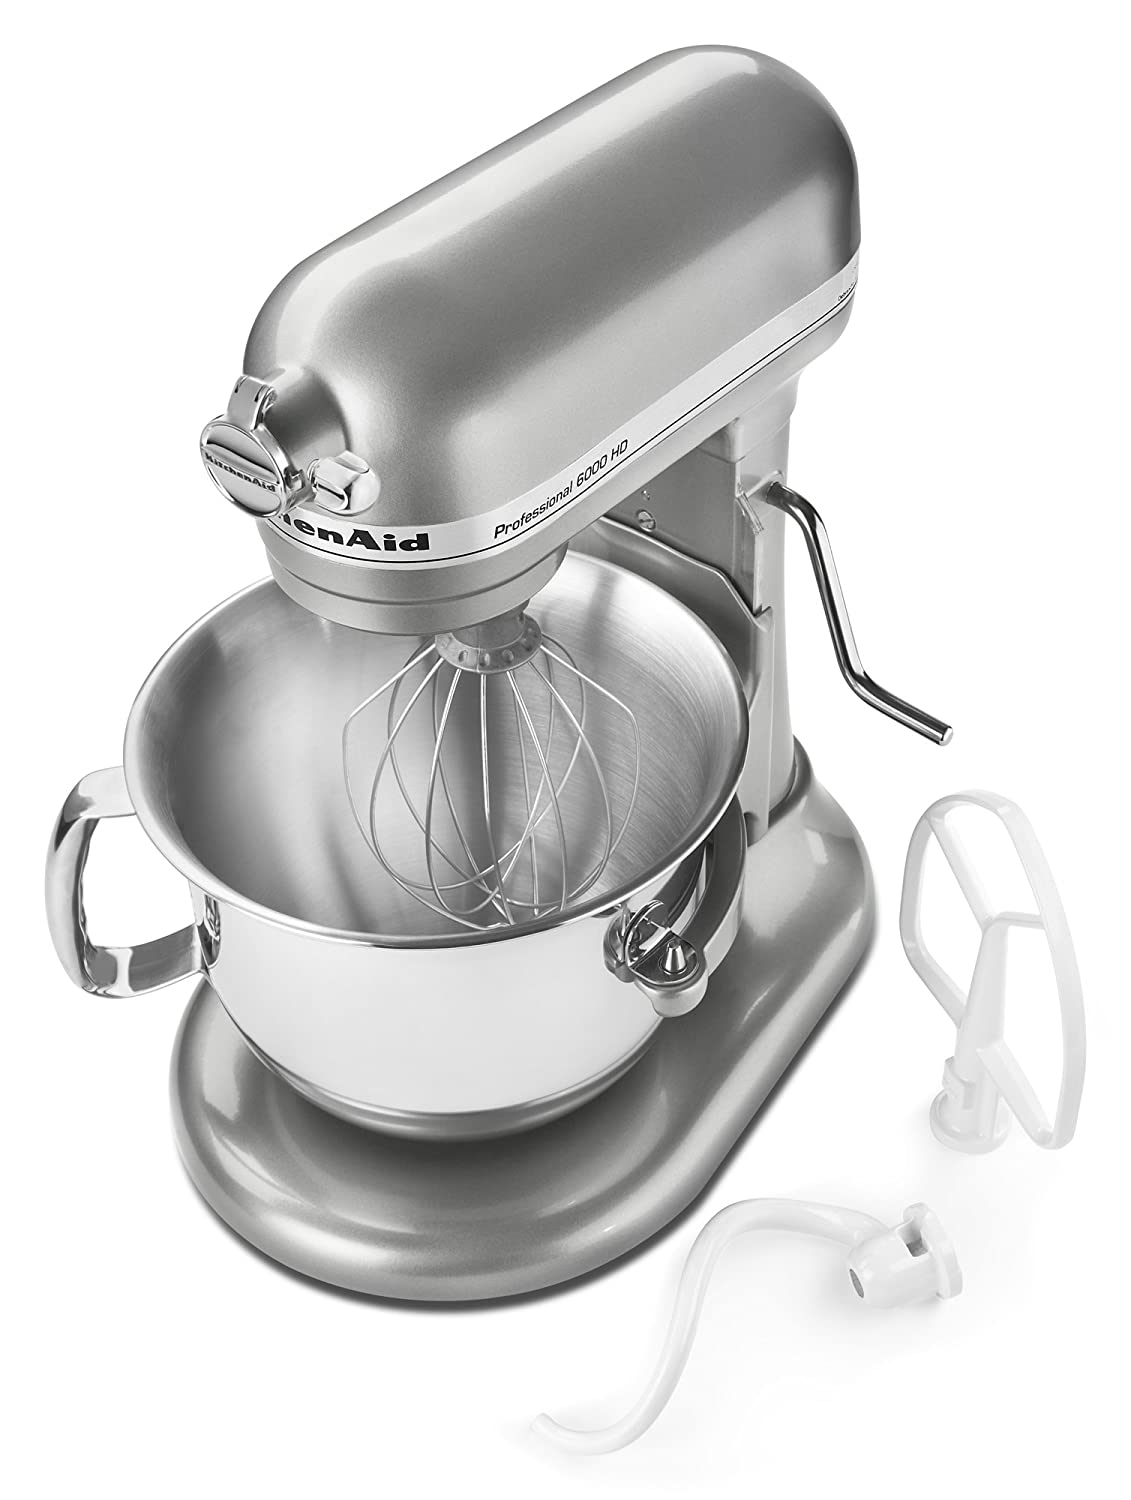 KitchenAid KSM6573CCU KitchenAid KSM6573CCU 6-Qt. Professional 6000 HD Bowl-Lift Stand Mixer- Contour Silver, Contour Silver by KitchenAid: Amazon.es: Hogar